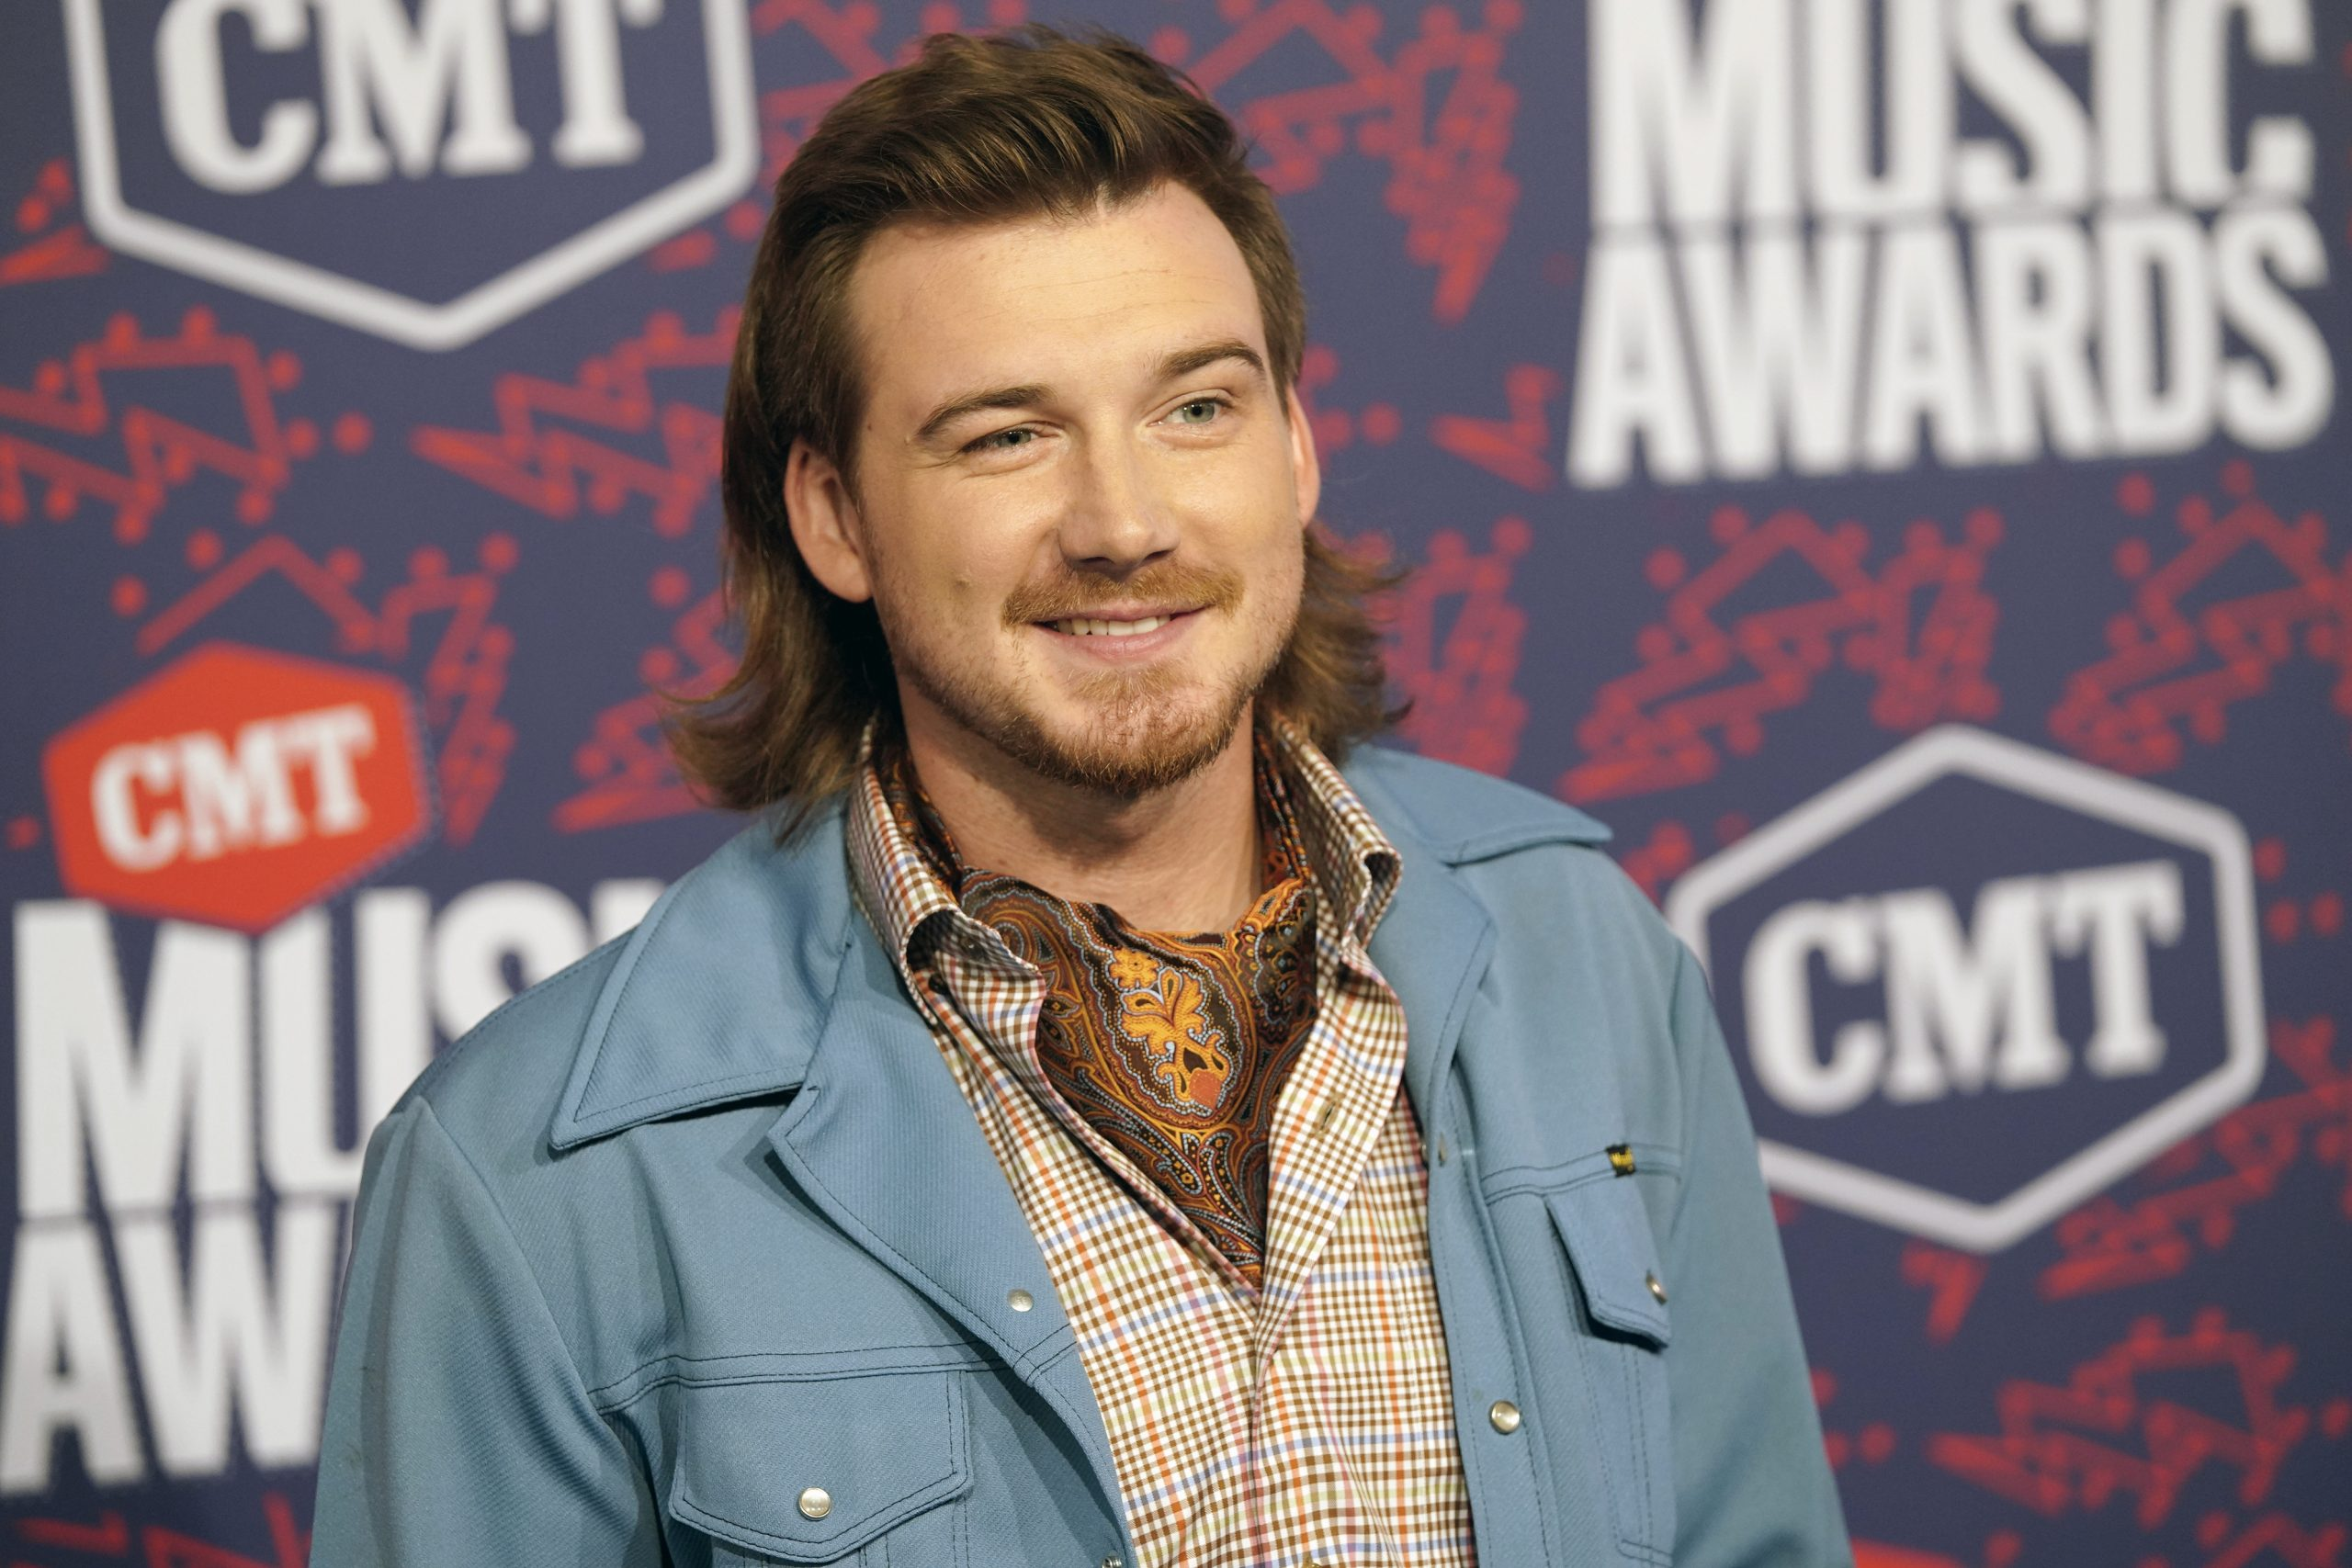 Country artist Morgan Wallen still set to perform in Bangor this summer, after racist comment